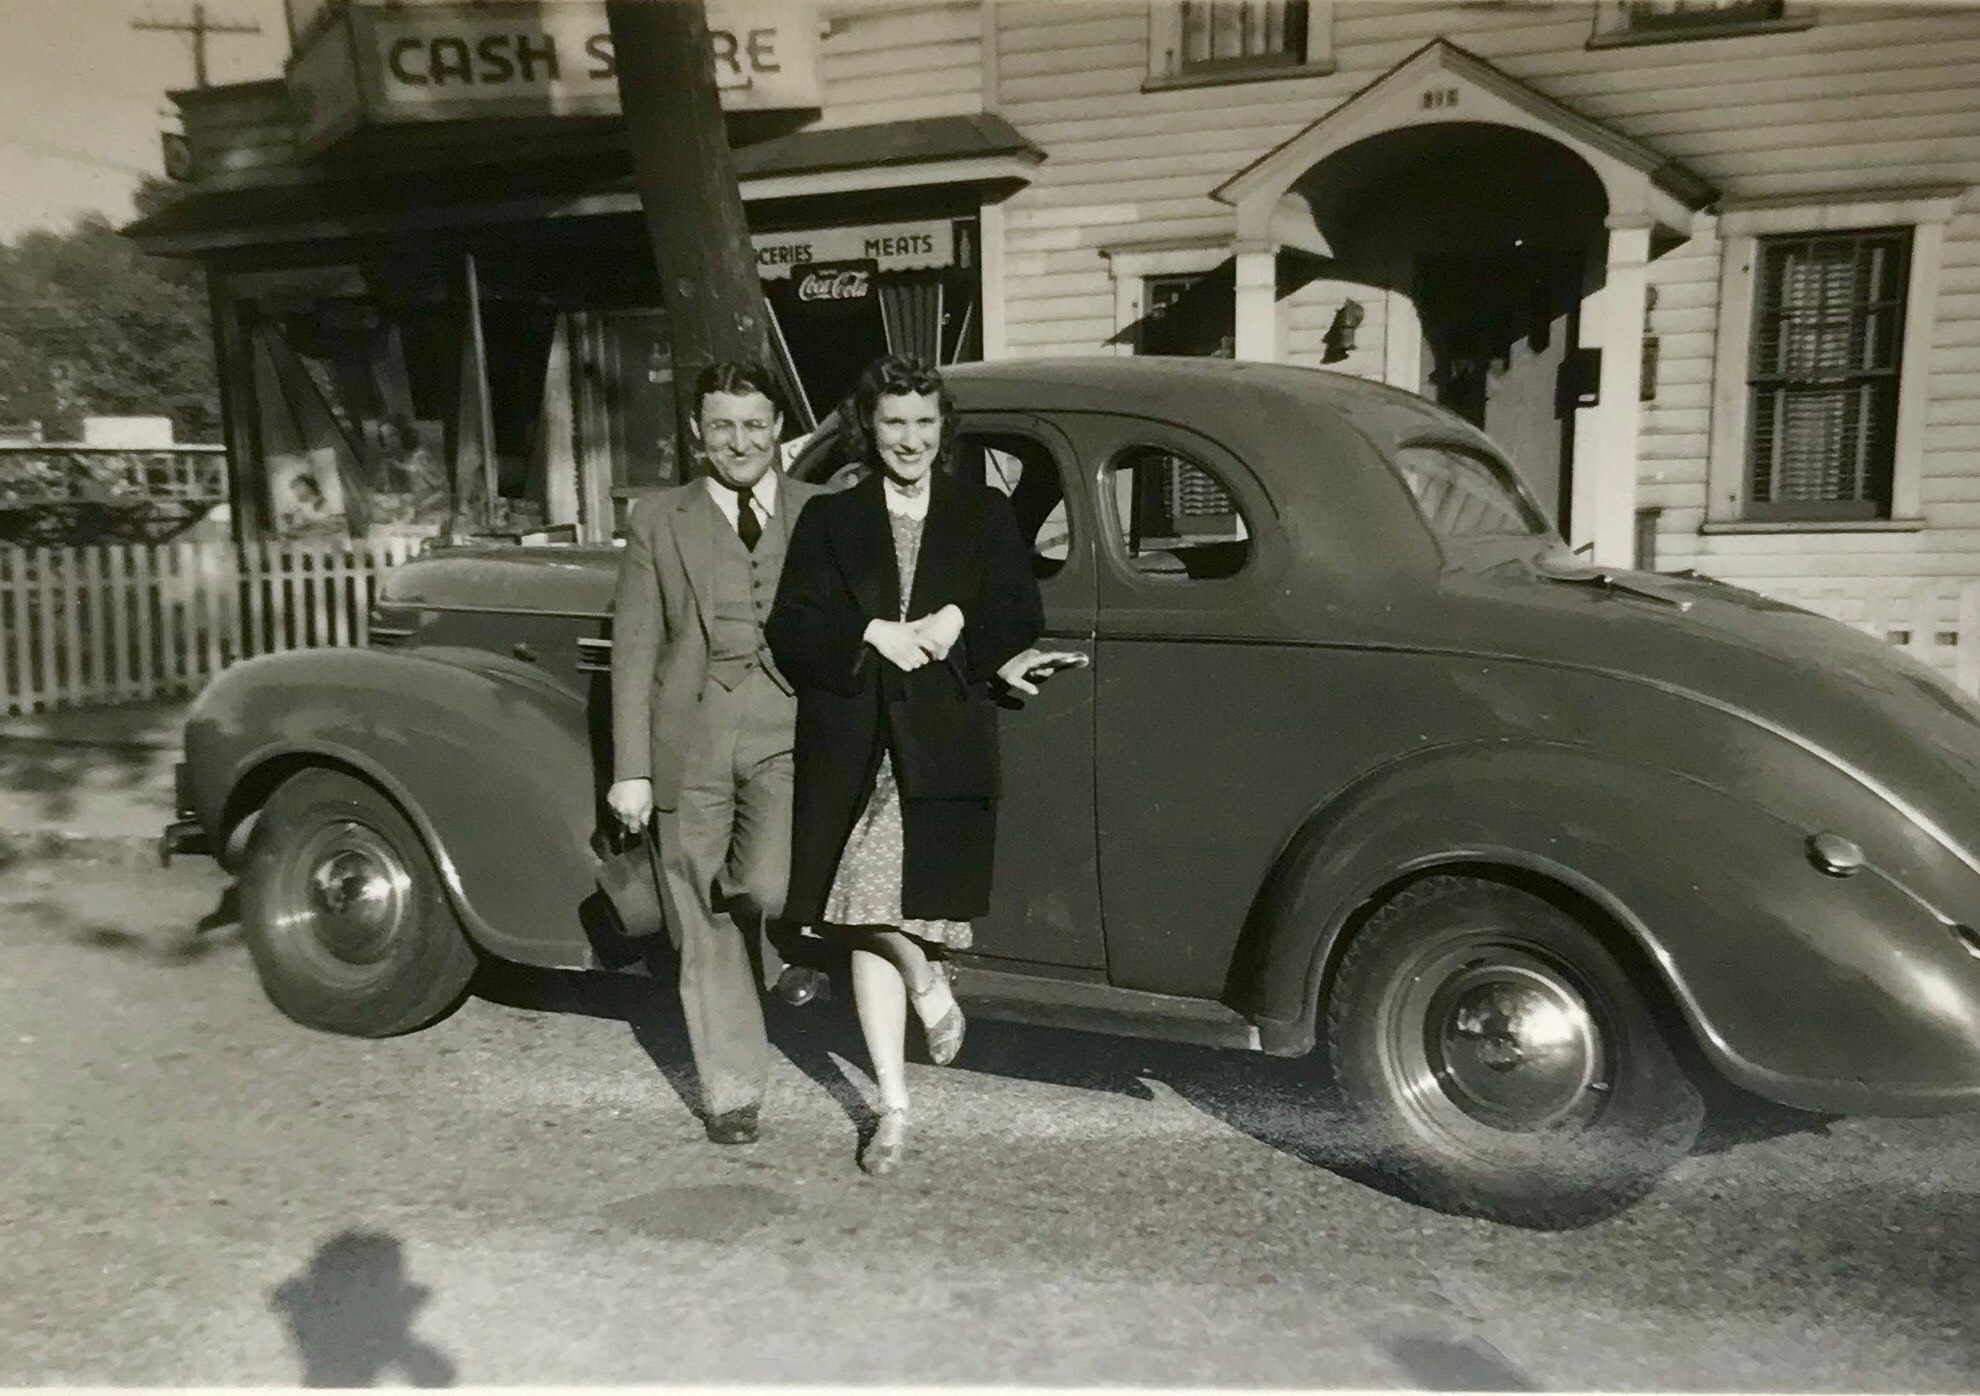 Newlyweds Ray and Ann, 1941